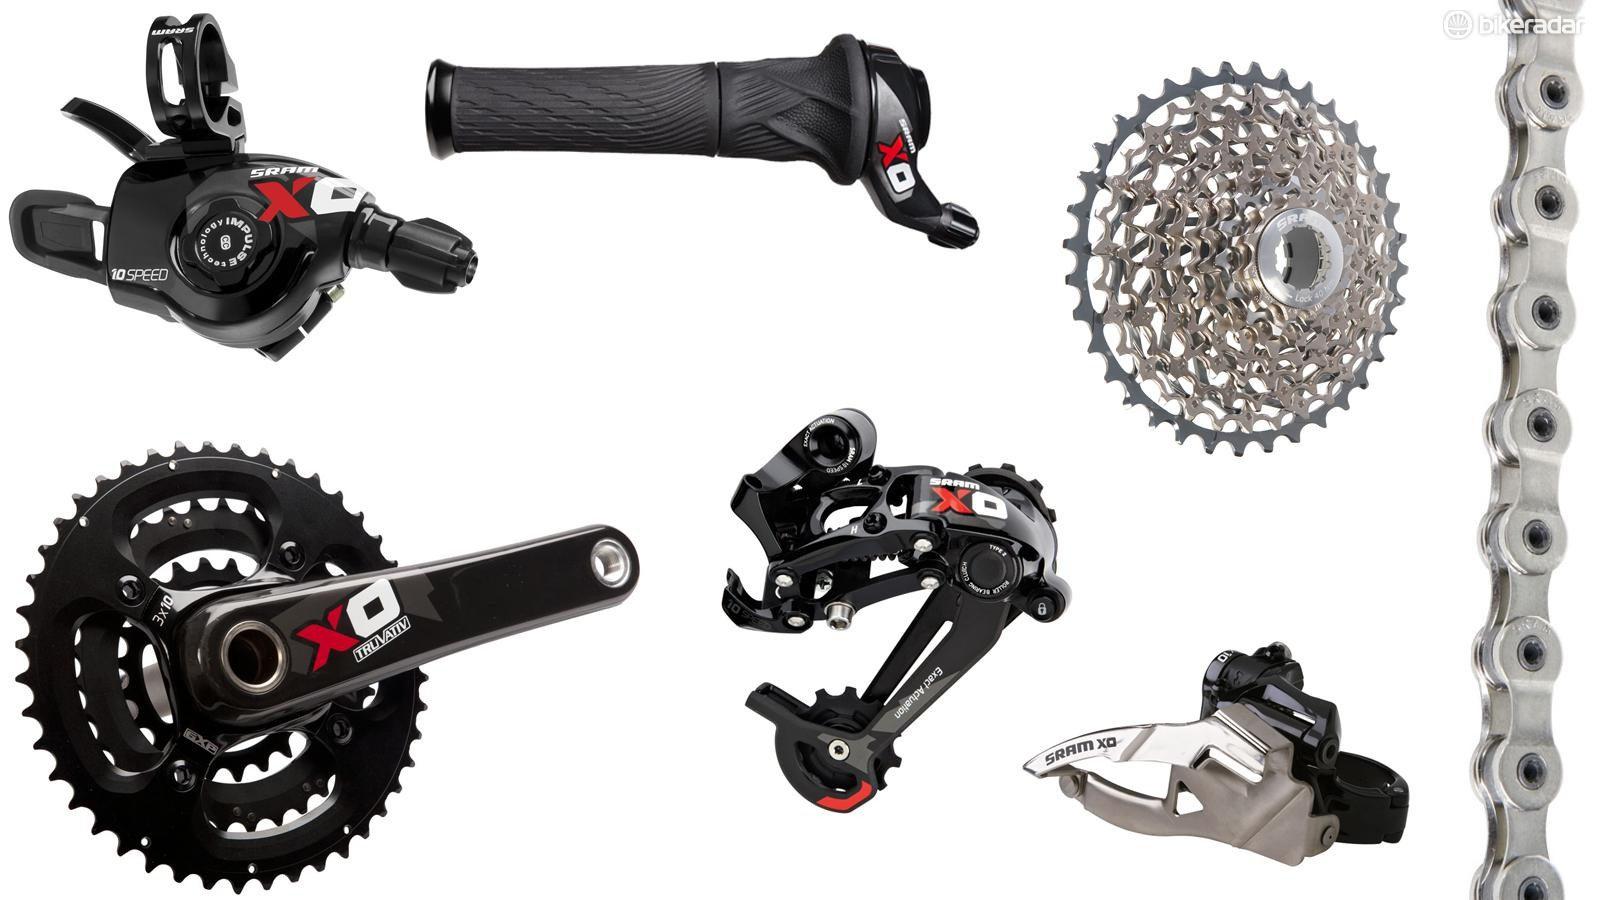 A long-standing popular choice in performance groupsets, SRAM X0 continues with its 2x10 gearing. It's often compared to Shimano XT, but X0's use of carbon fiber means it's lighter and more expensive